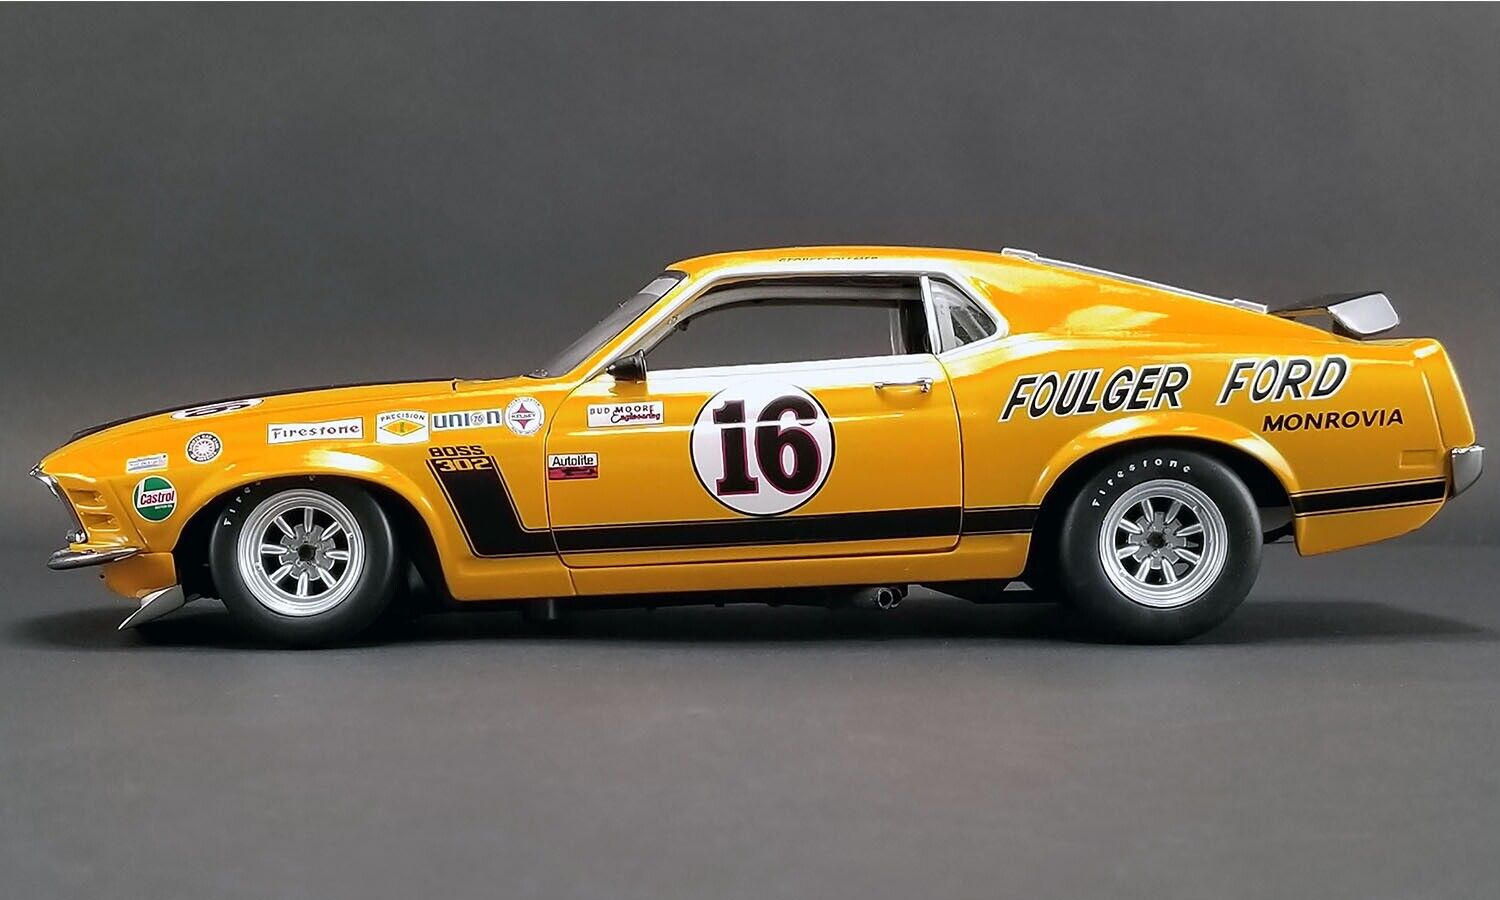 1970 Ford Boss 302 Trans Am Foulger Mustang  16 Follmer Acme VorBesteellung Le